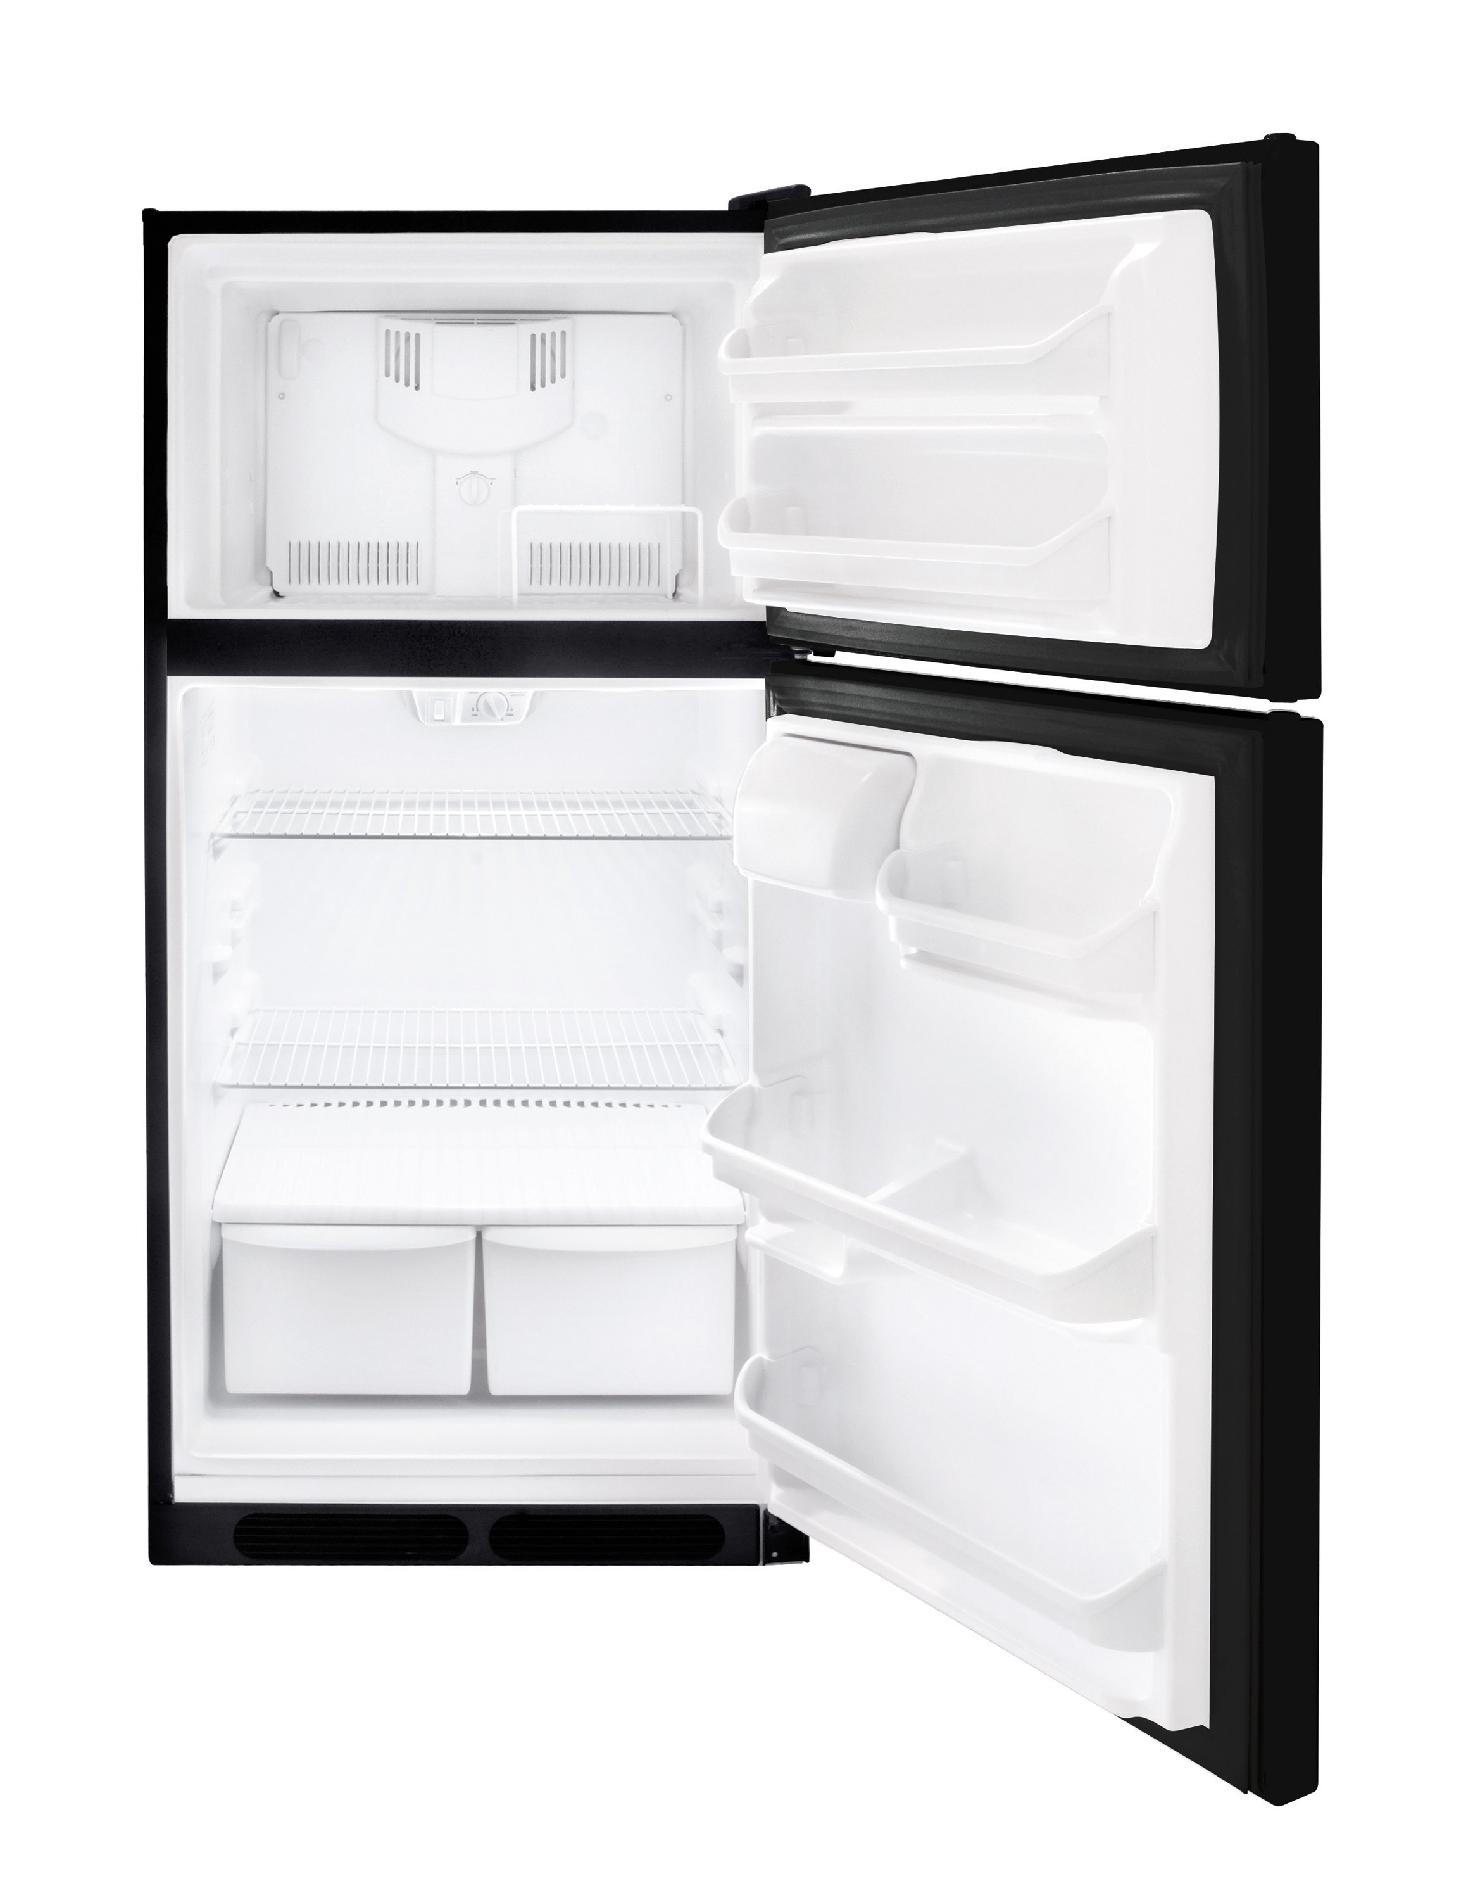 Frigidaire 14.8 cu. ft. Top-Freezer Refrigerator - Black